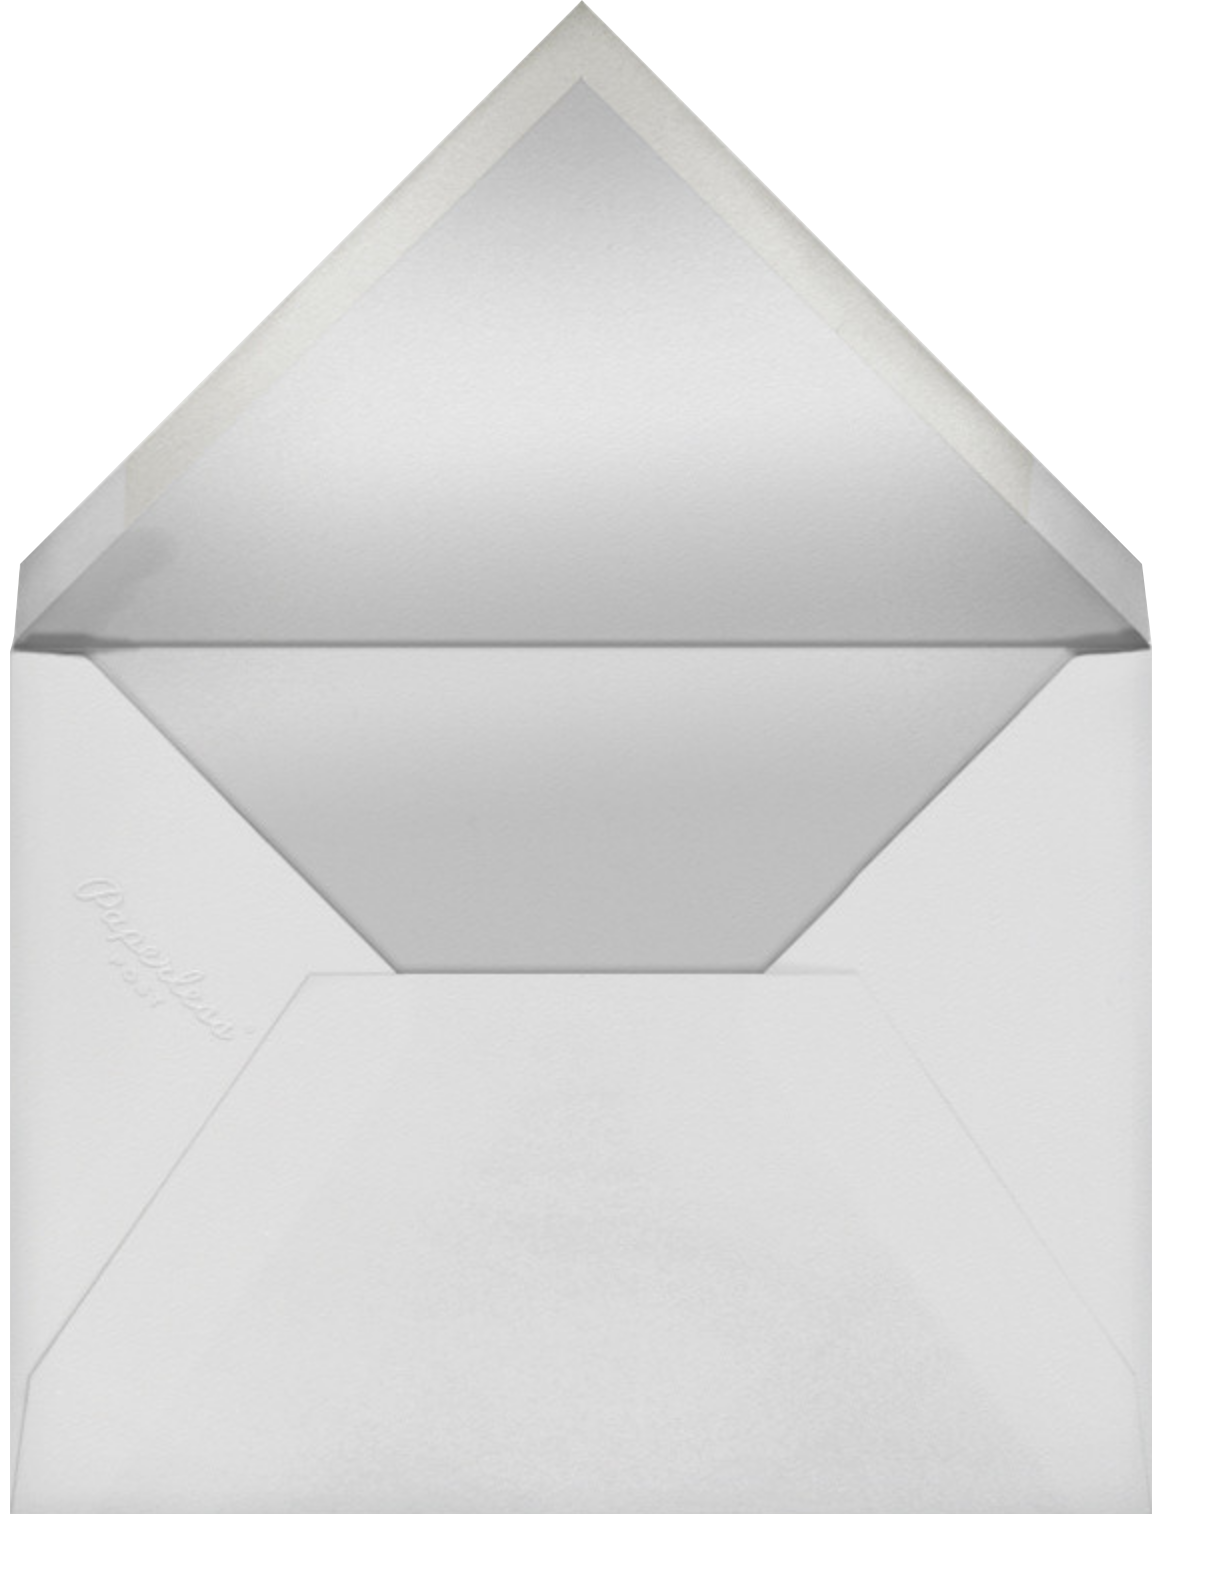 My Super Hero - Paperless Post - Father's Day - envelope back